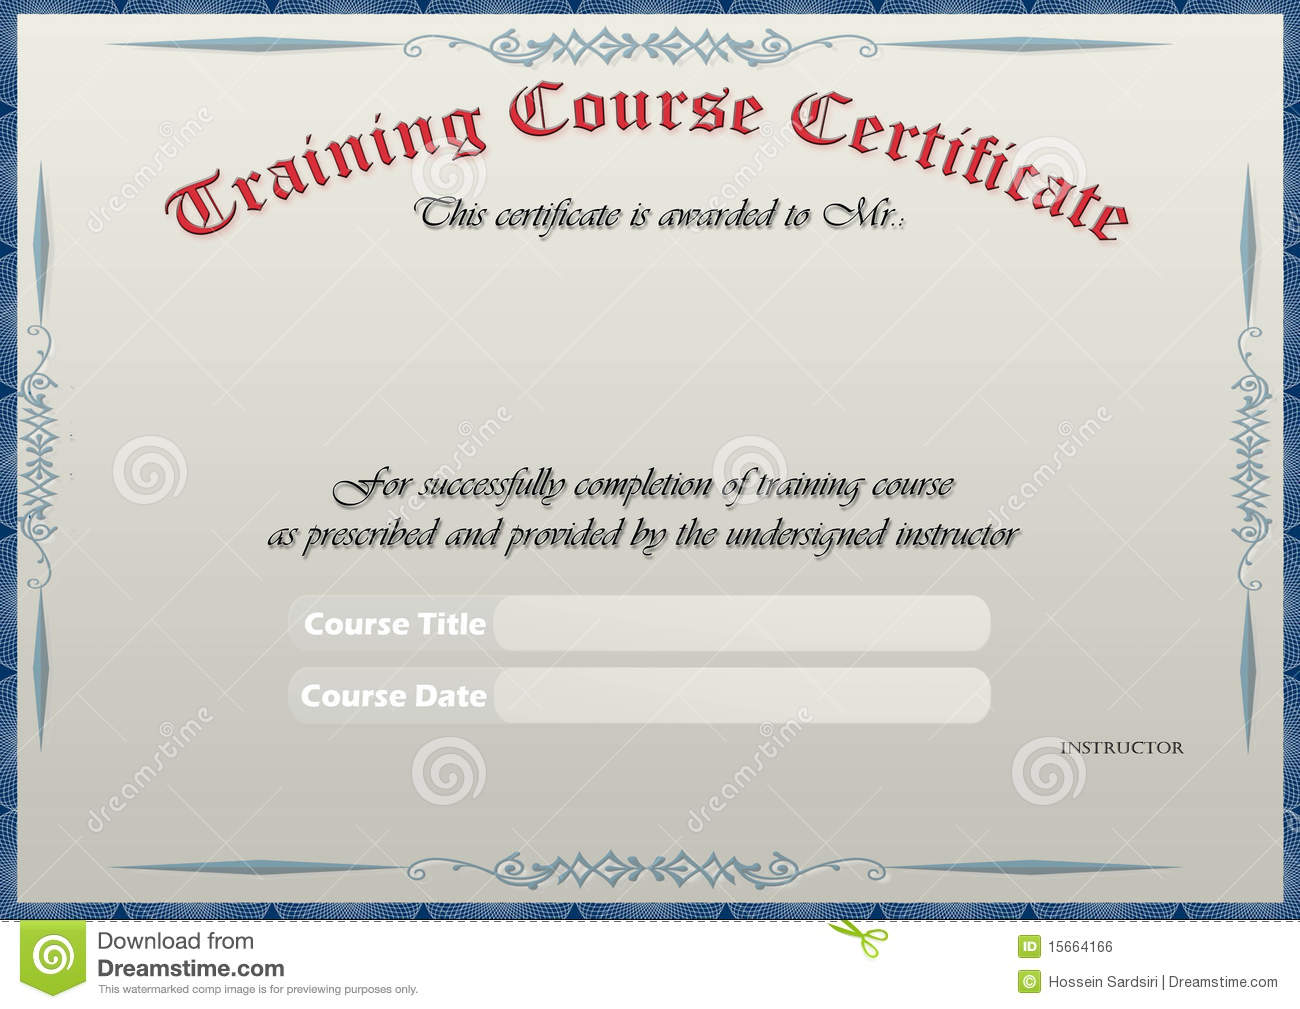 Training certificate templatesmberpro training certificate xflitez Choice Image